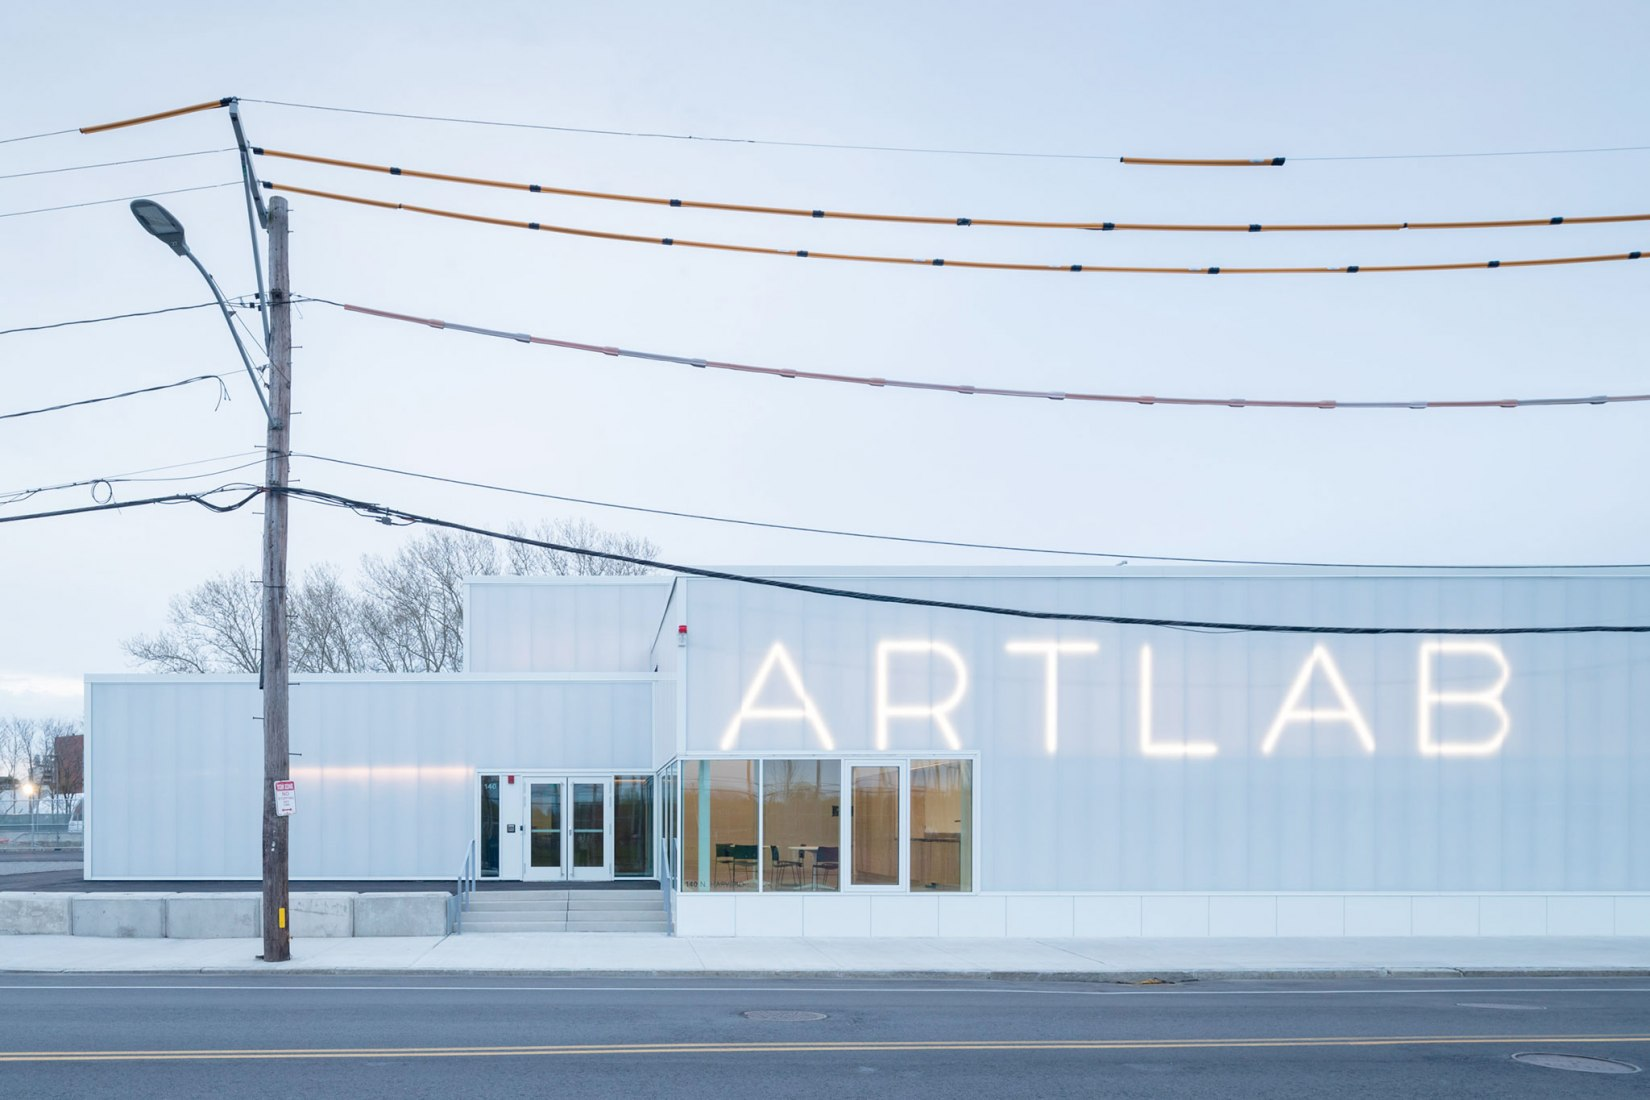 Harvard University's ArtLab by Barkow Leibinger. Photograph by Iwan Baan